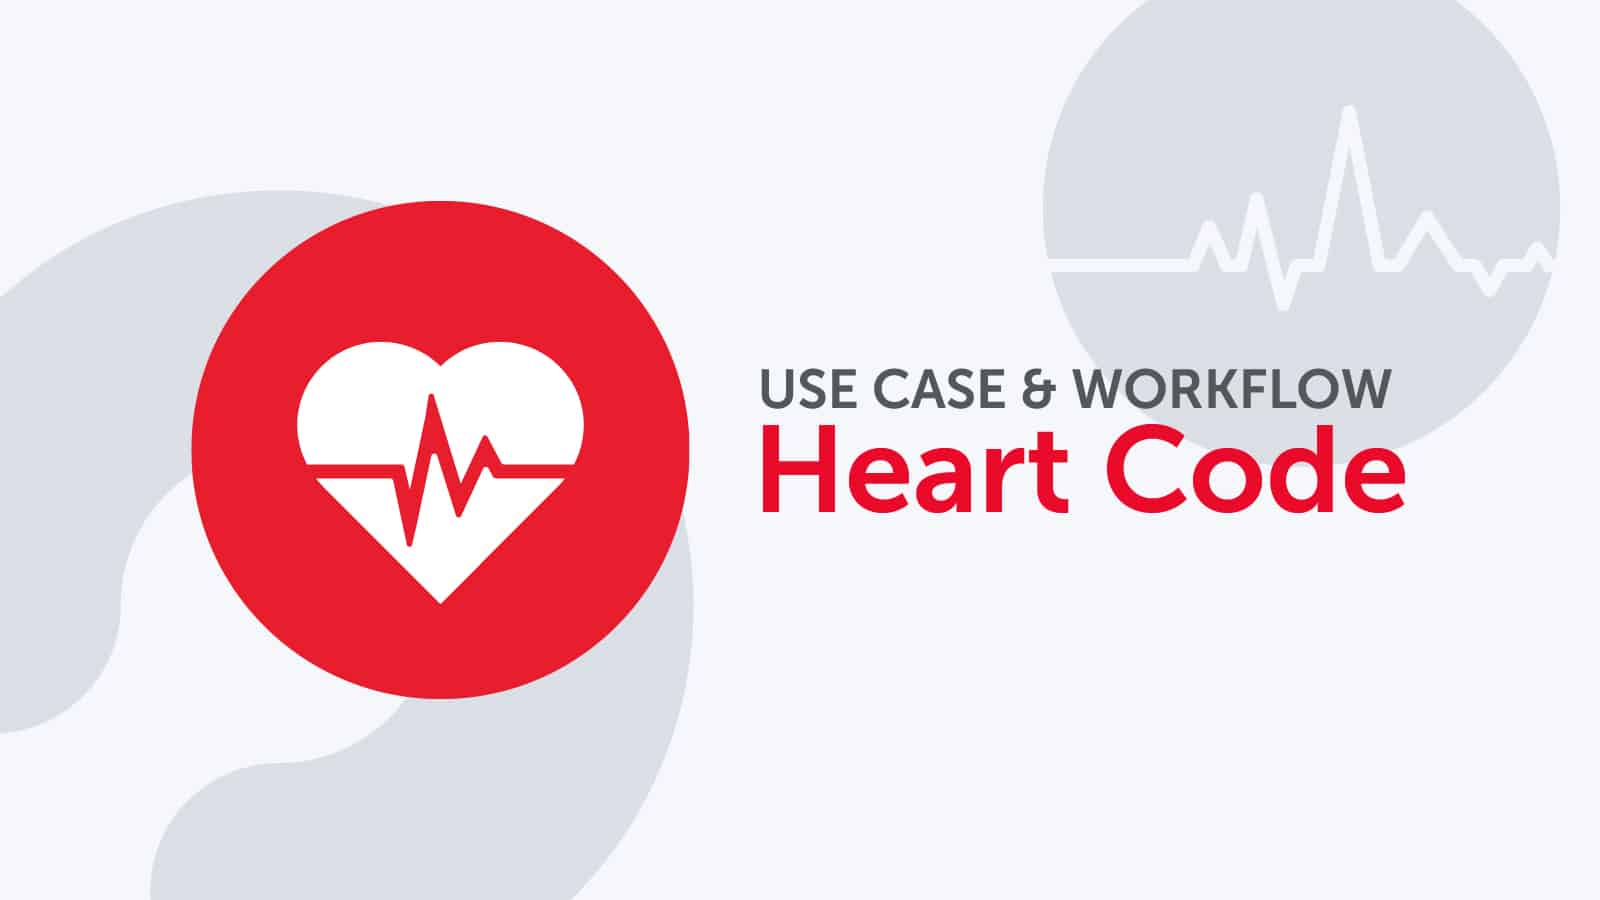 Providing faster treatment to heart code patients